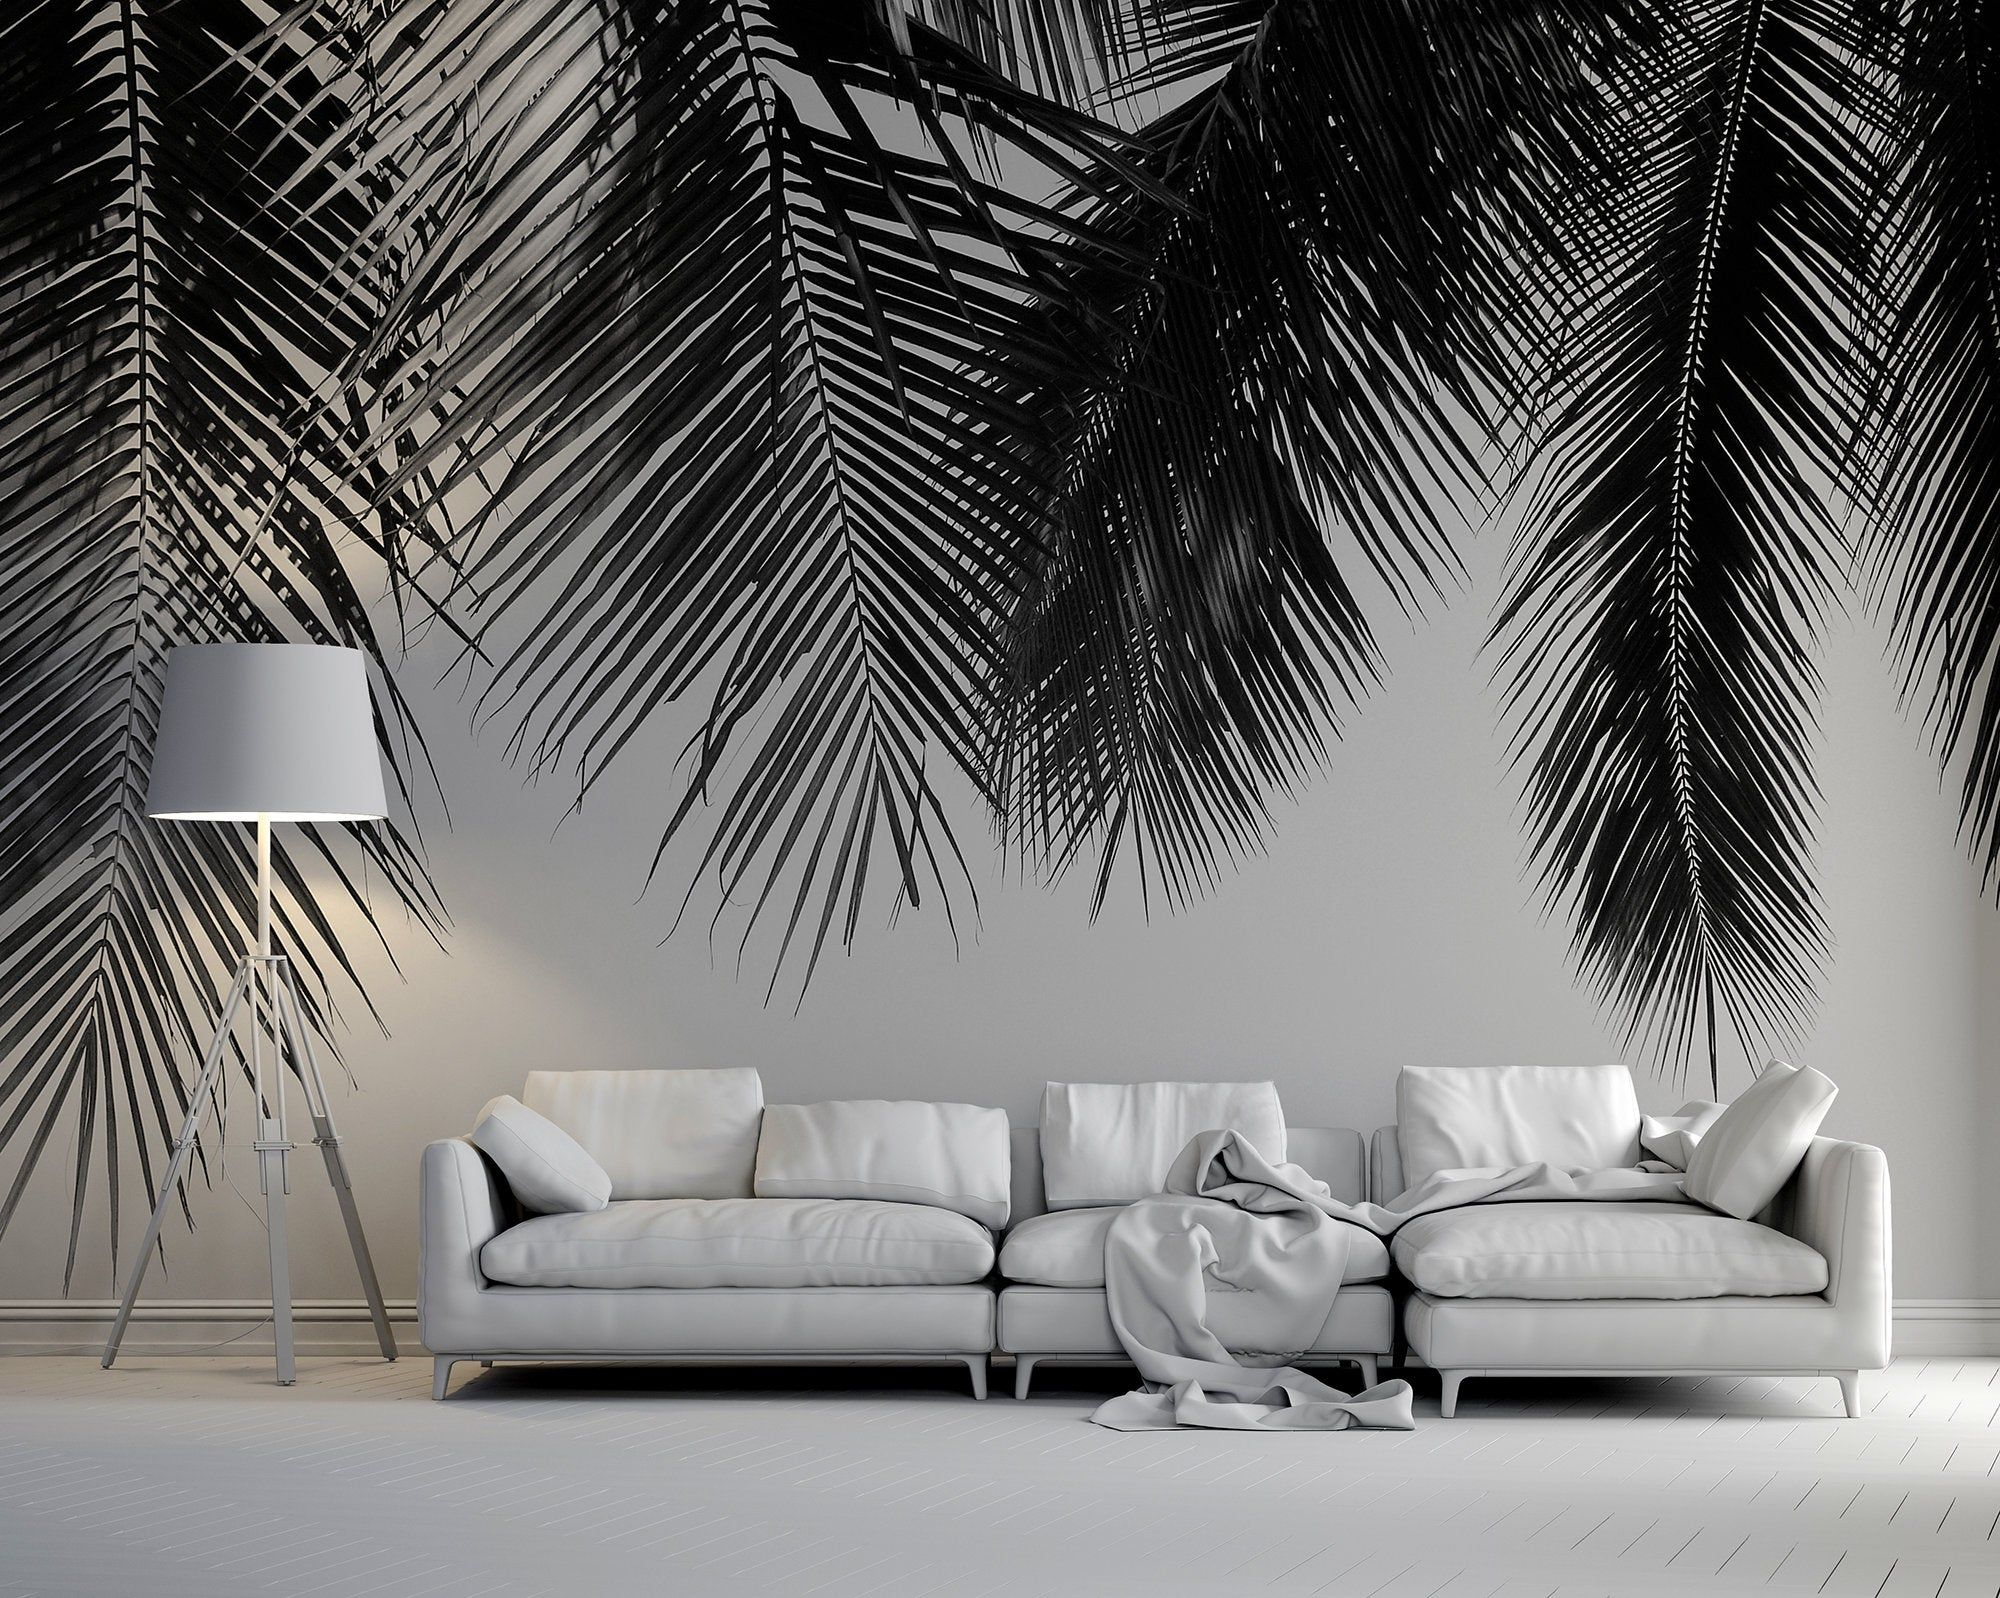 Palm Leaves Hanging From Above Photo Wallpaper Self Adhesive Peel Stick Repositionable Removable Wallpaper Tapeten 3d Tapete Fototapete